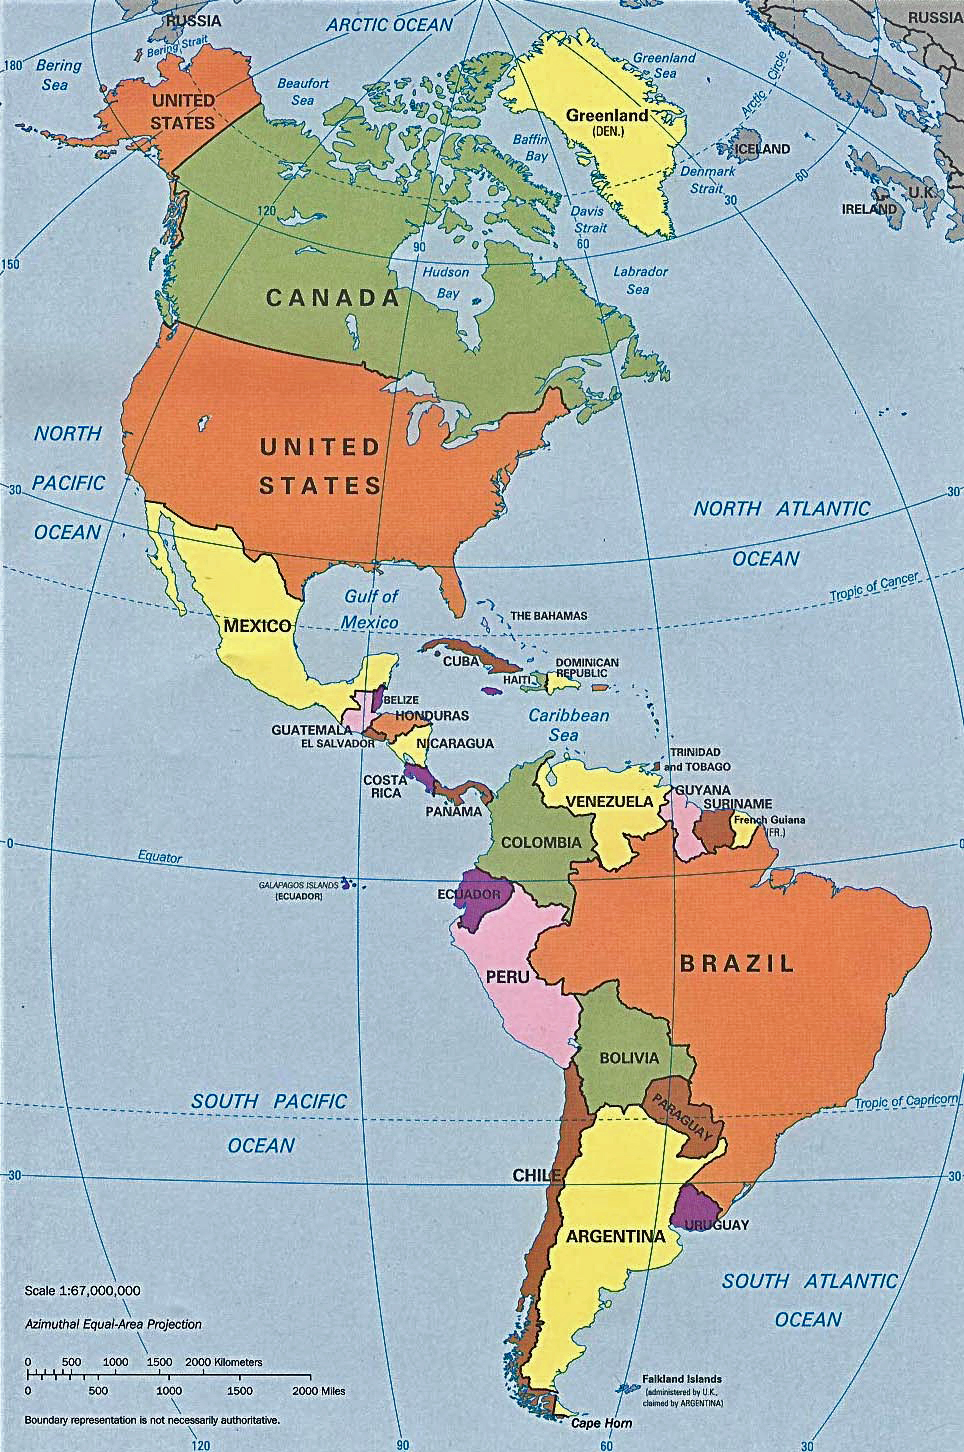 map of netherlands antilles islands with Map on North America besides File Lesser Antilles named together with Powerpoint Map Of France And Its Territories moreover Index En moreover File lesser antilles named.